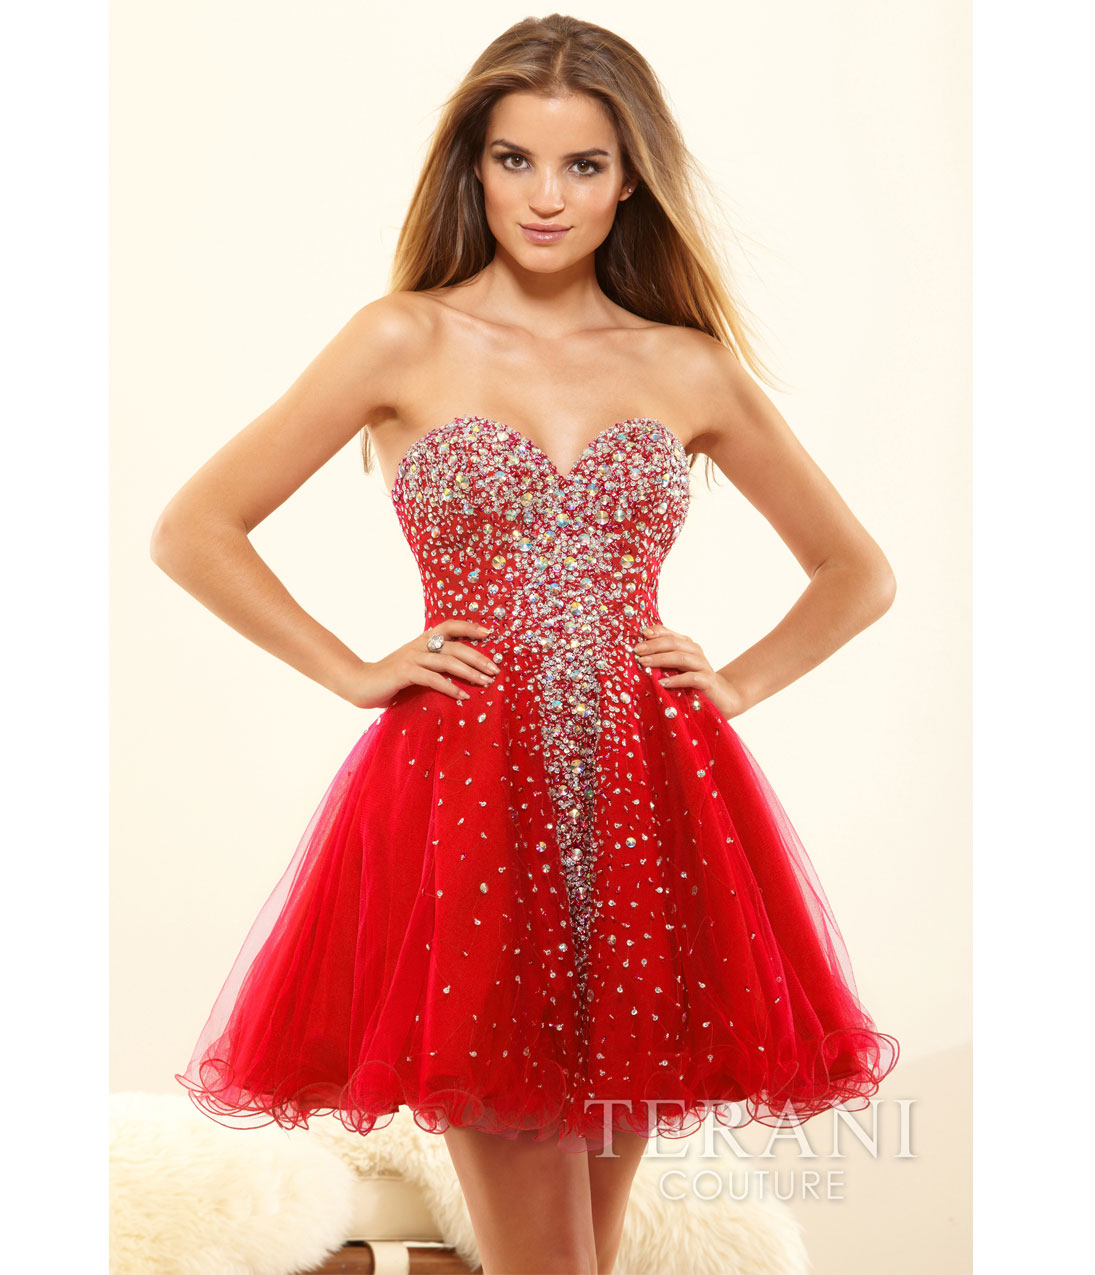 Terani 2014 Prom Dresses - Red Crystal from Unique Vintage Red Prom Dresses 2014